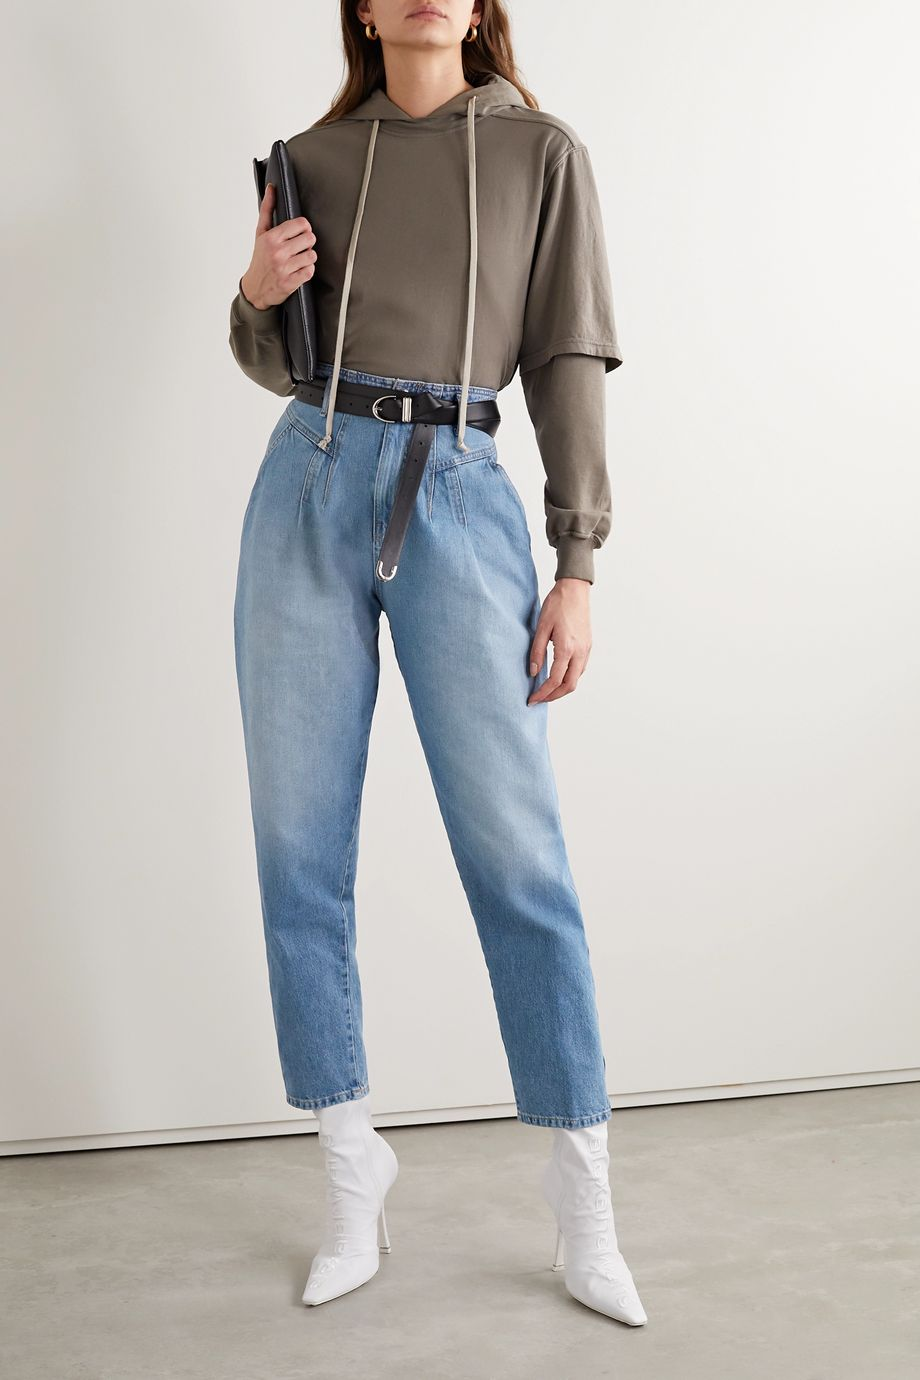 TRE by Natalie Ratabesi High-rise tapered jeans